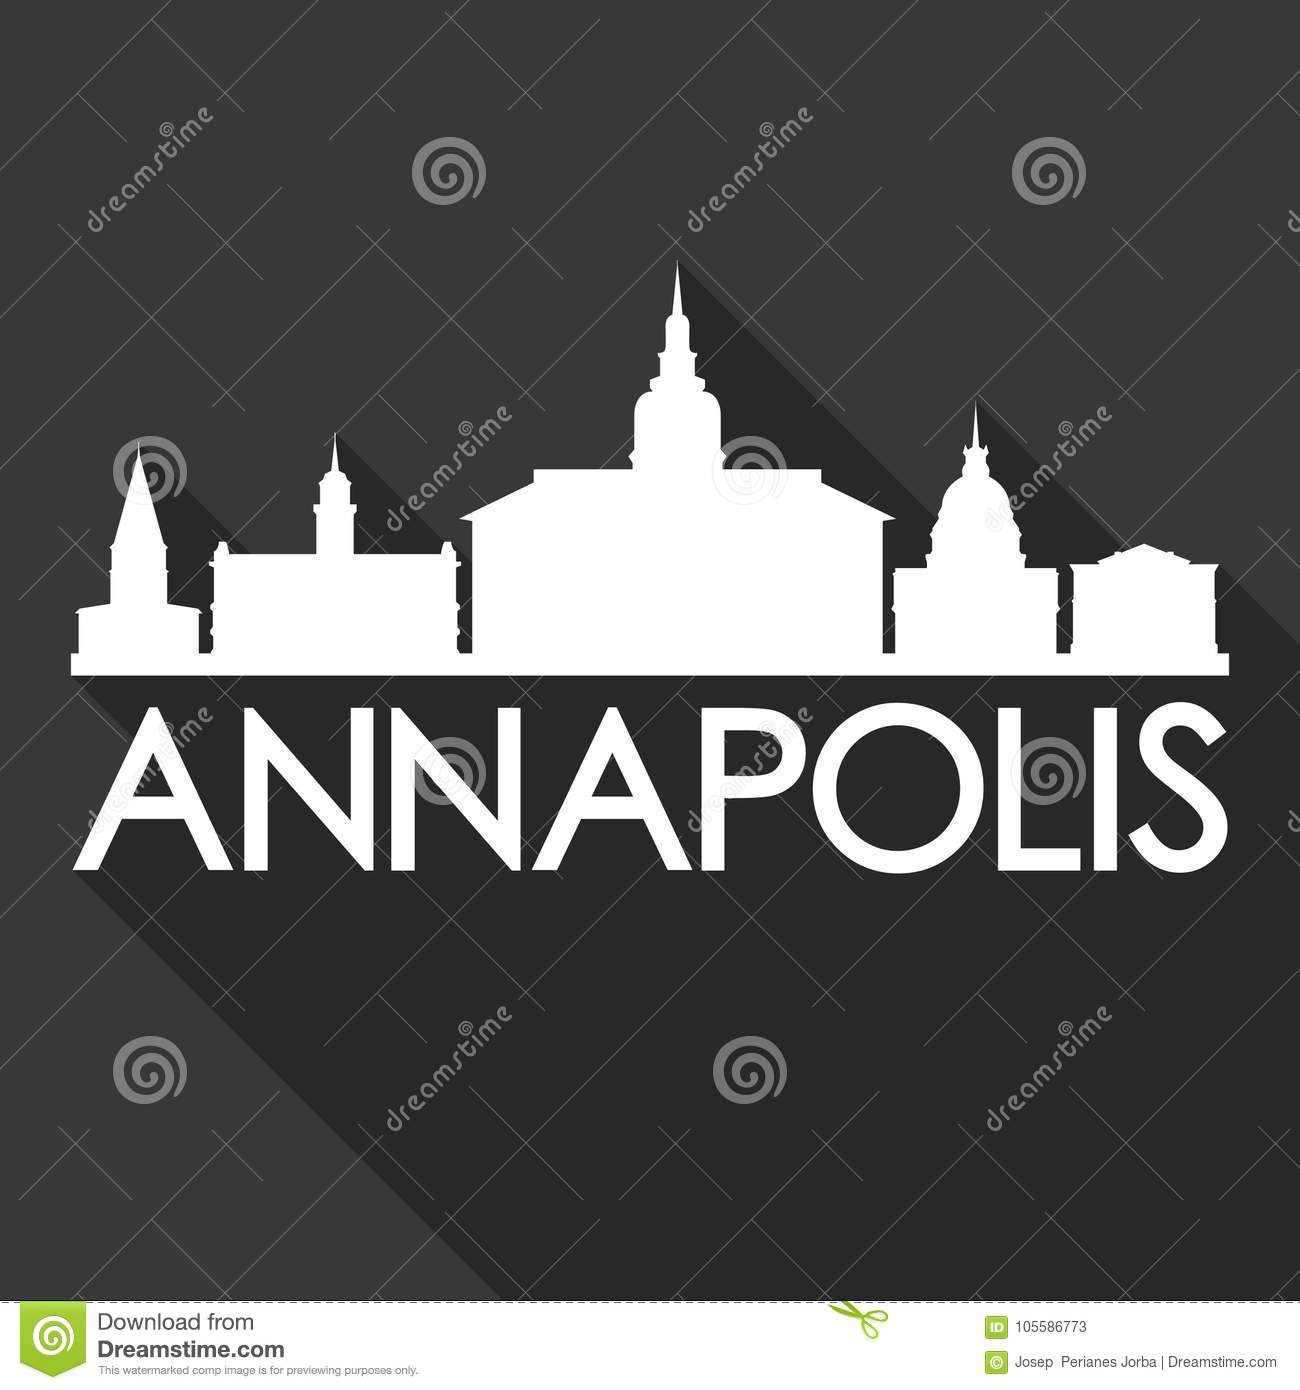 Annapolis Maryland United States Of America USA Icon Vector Art Flat ...